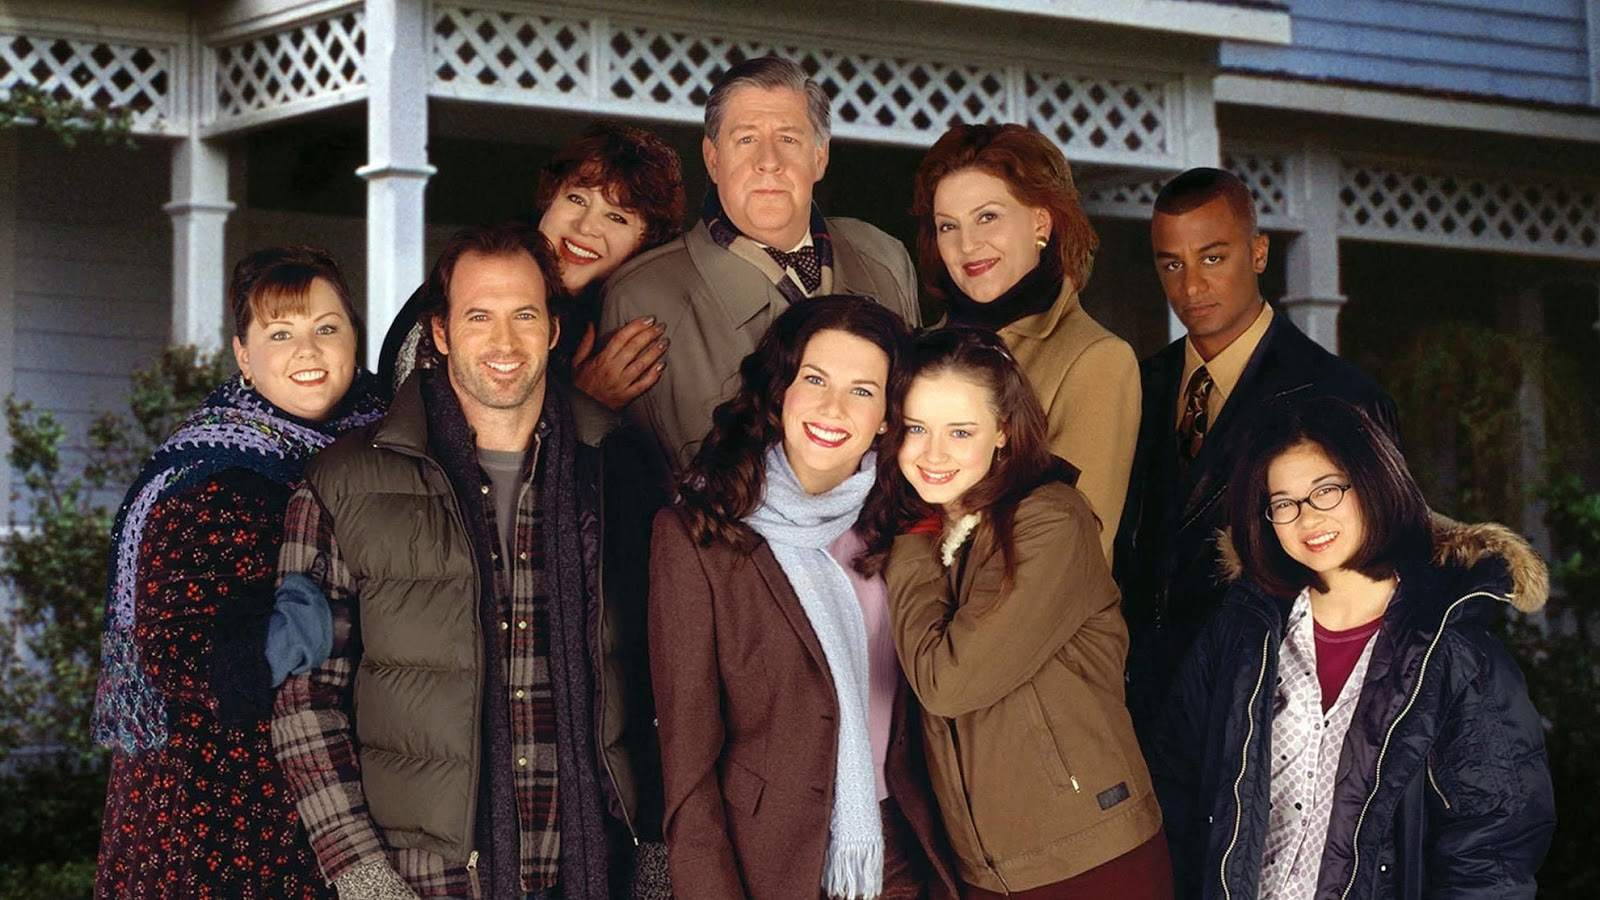 Rory Lorelai Emily Richard Luke Danes Sookie Lane Michel Miss Patty Lauren Graham Yanic Truesdale Melissa McCarthy Liz Torres Alexis Bledel Kelly Bishop Edward Herrmann Scott Patterson Keiko Agena Las Chicas Gilmore Gilmore Girls a year in the life Netflix